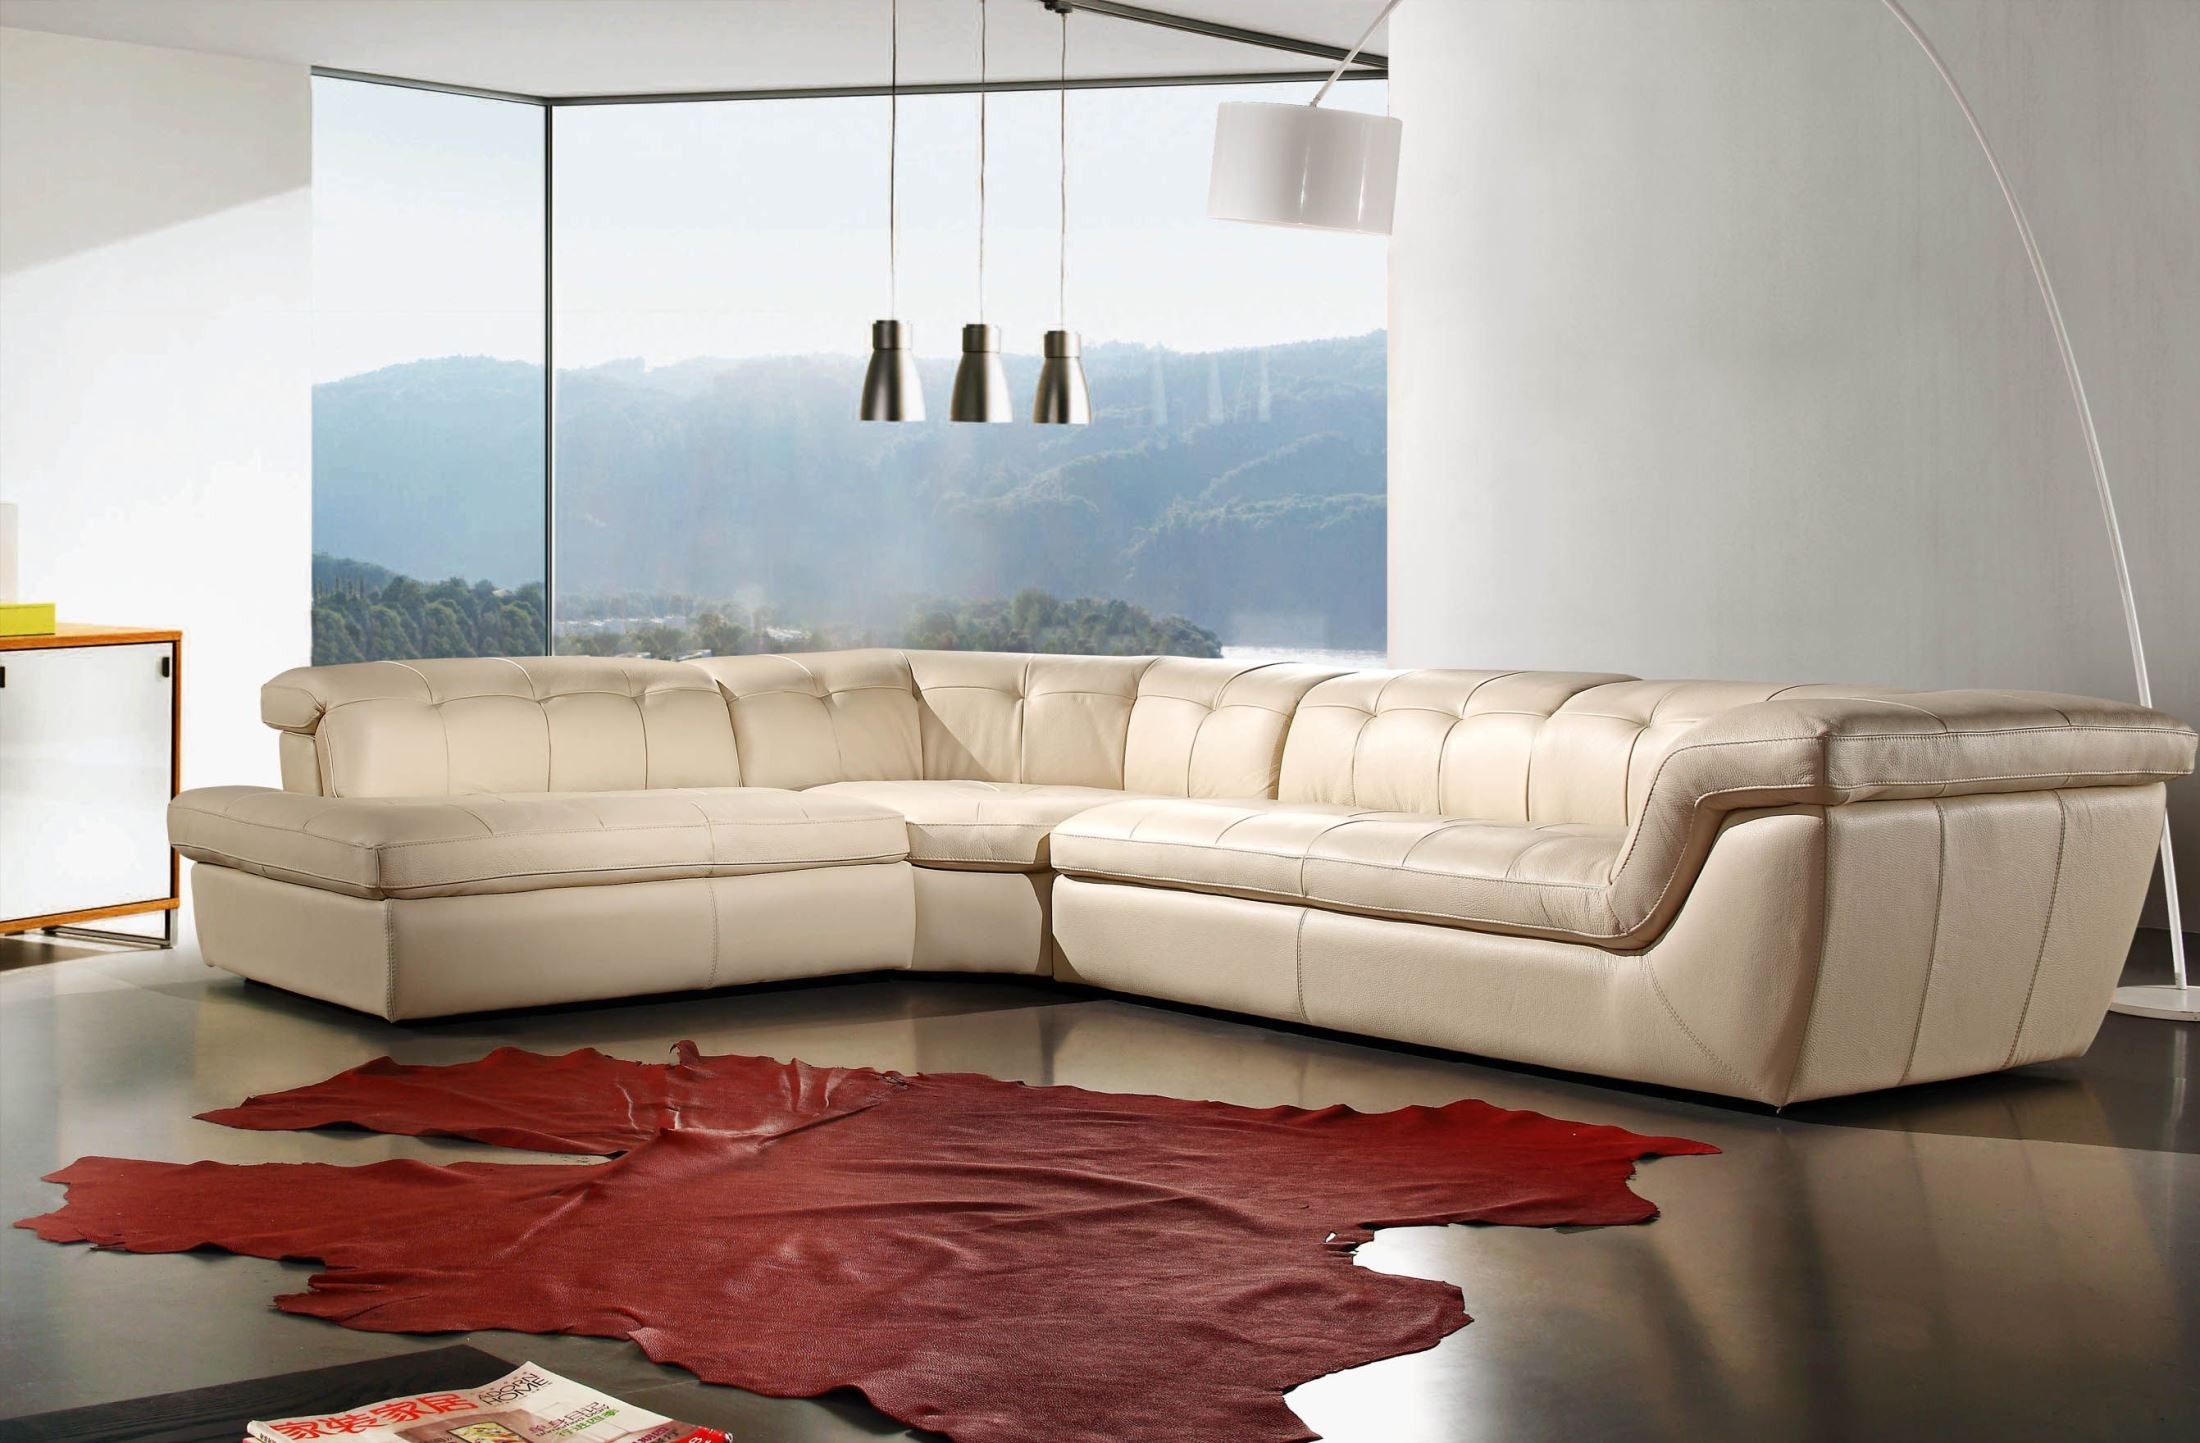 397 Beige Italian Leather LAF Sectional From J&M (17544291